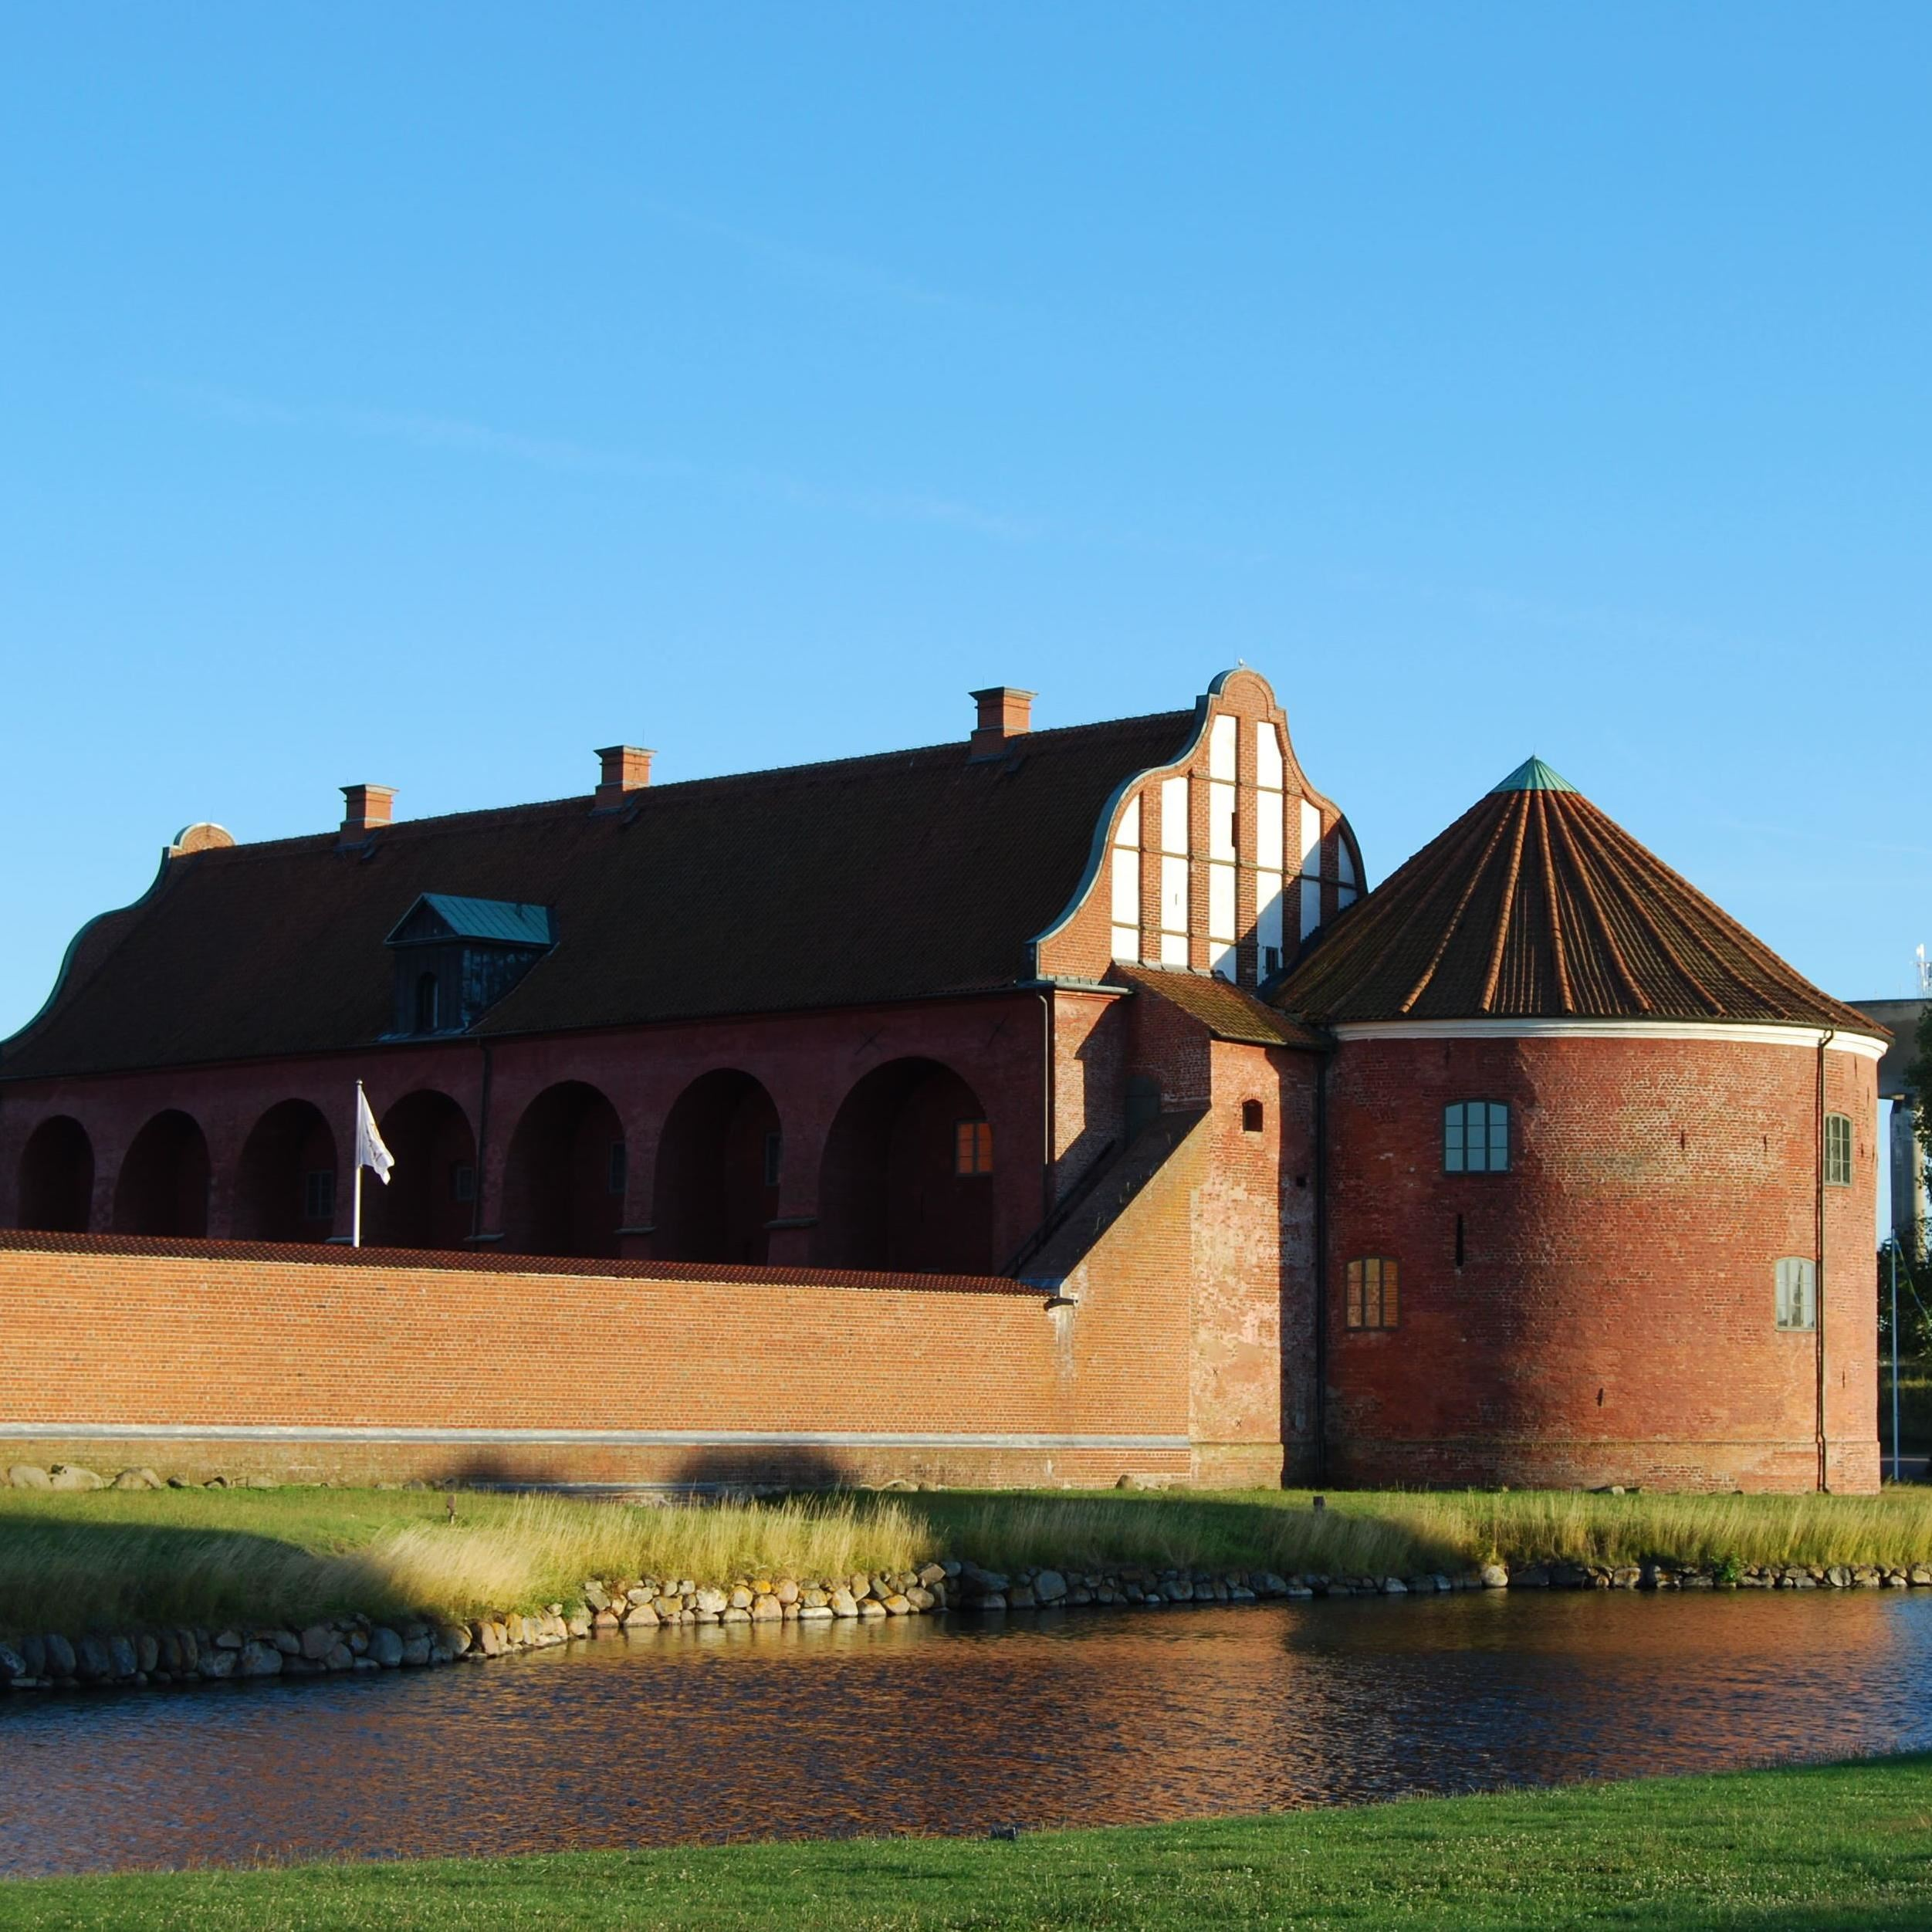 The Landskrona Fortress, The Citadel